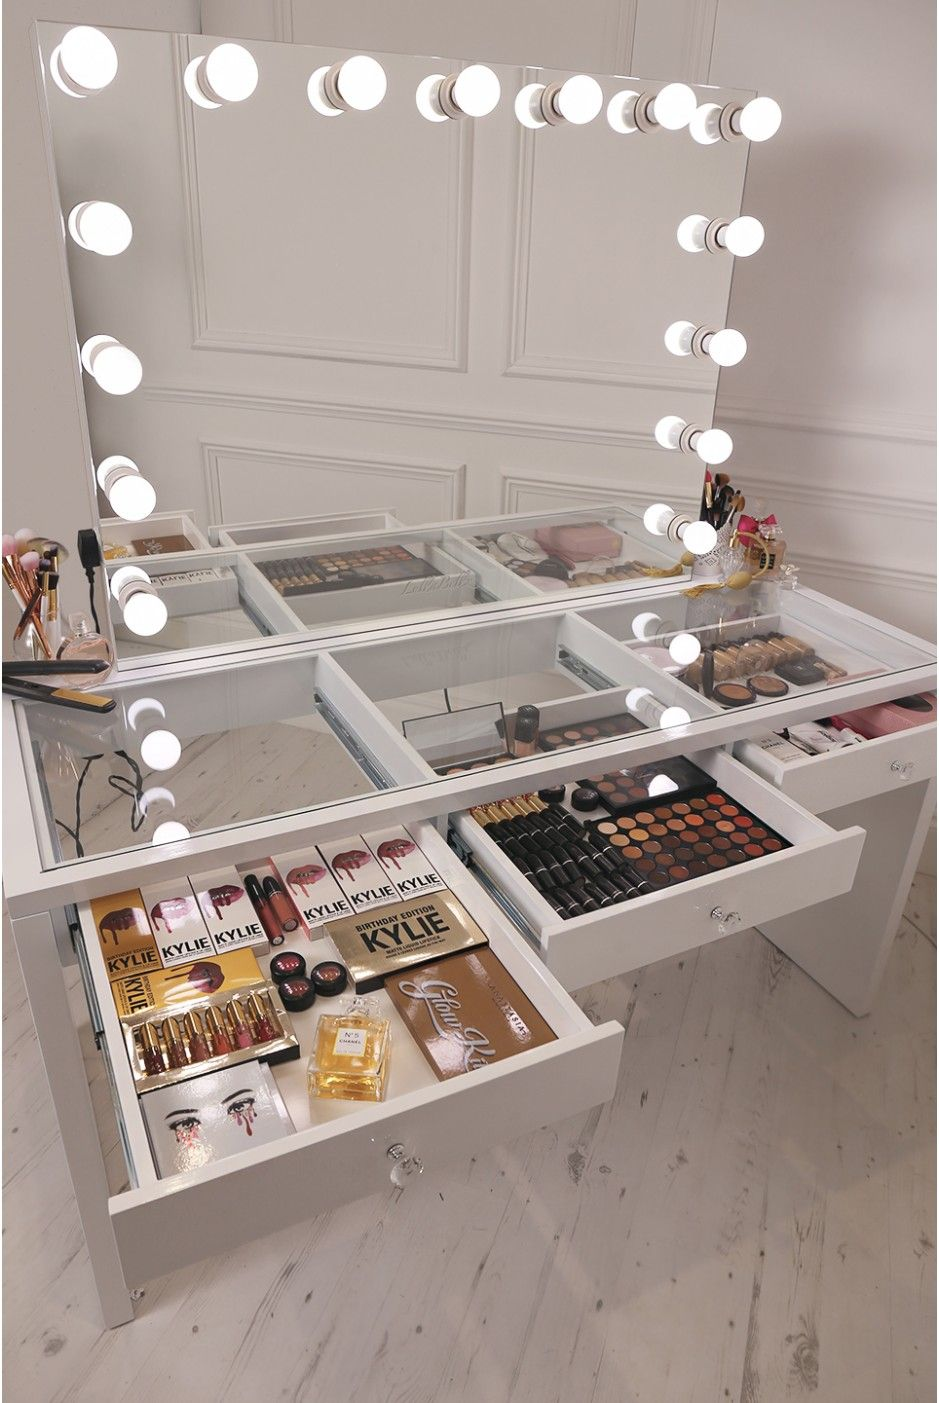 Crisp white finish slaystation make up vanity with premium storage